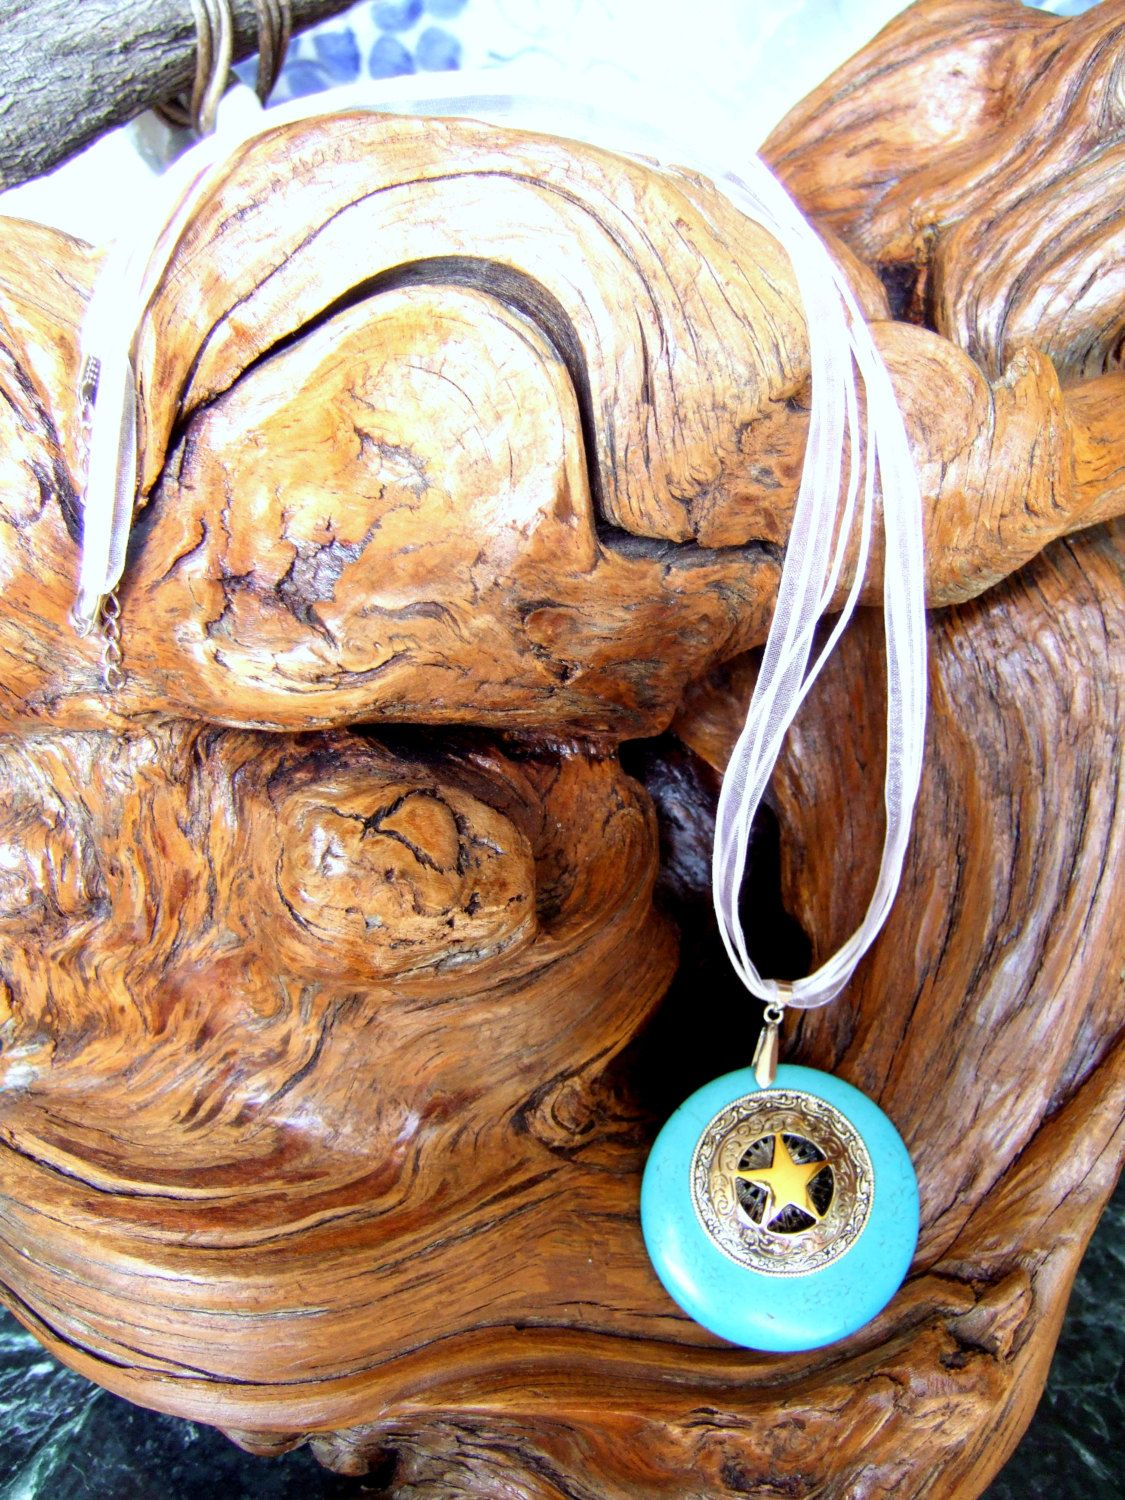 TURQUOISE TEXAS STAR Necklace Pendant on Blue Howlite Stone with Silver Trim by argenesgems on Etsy